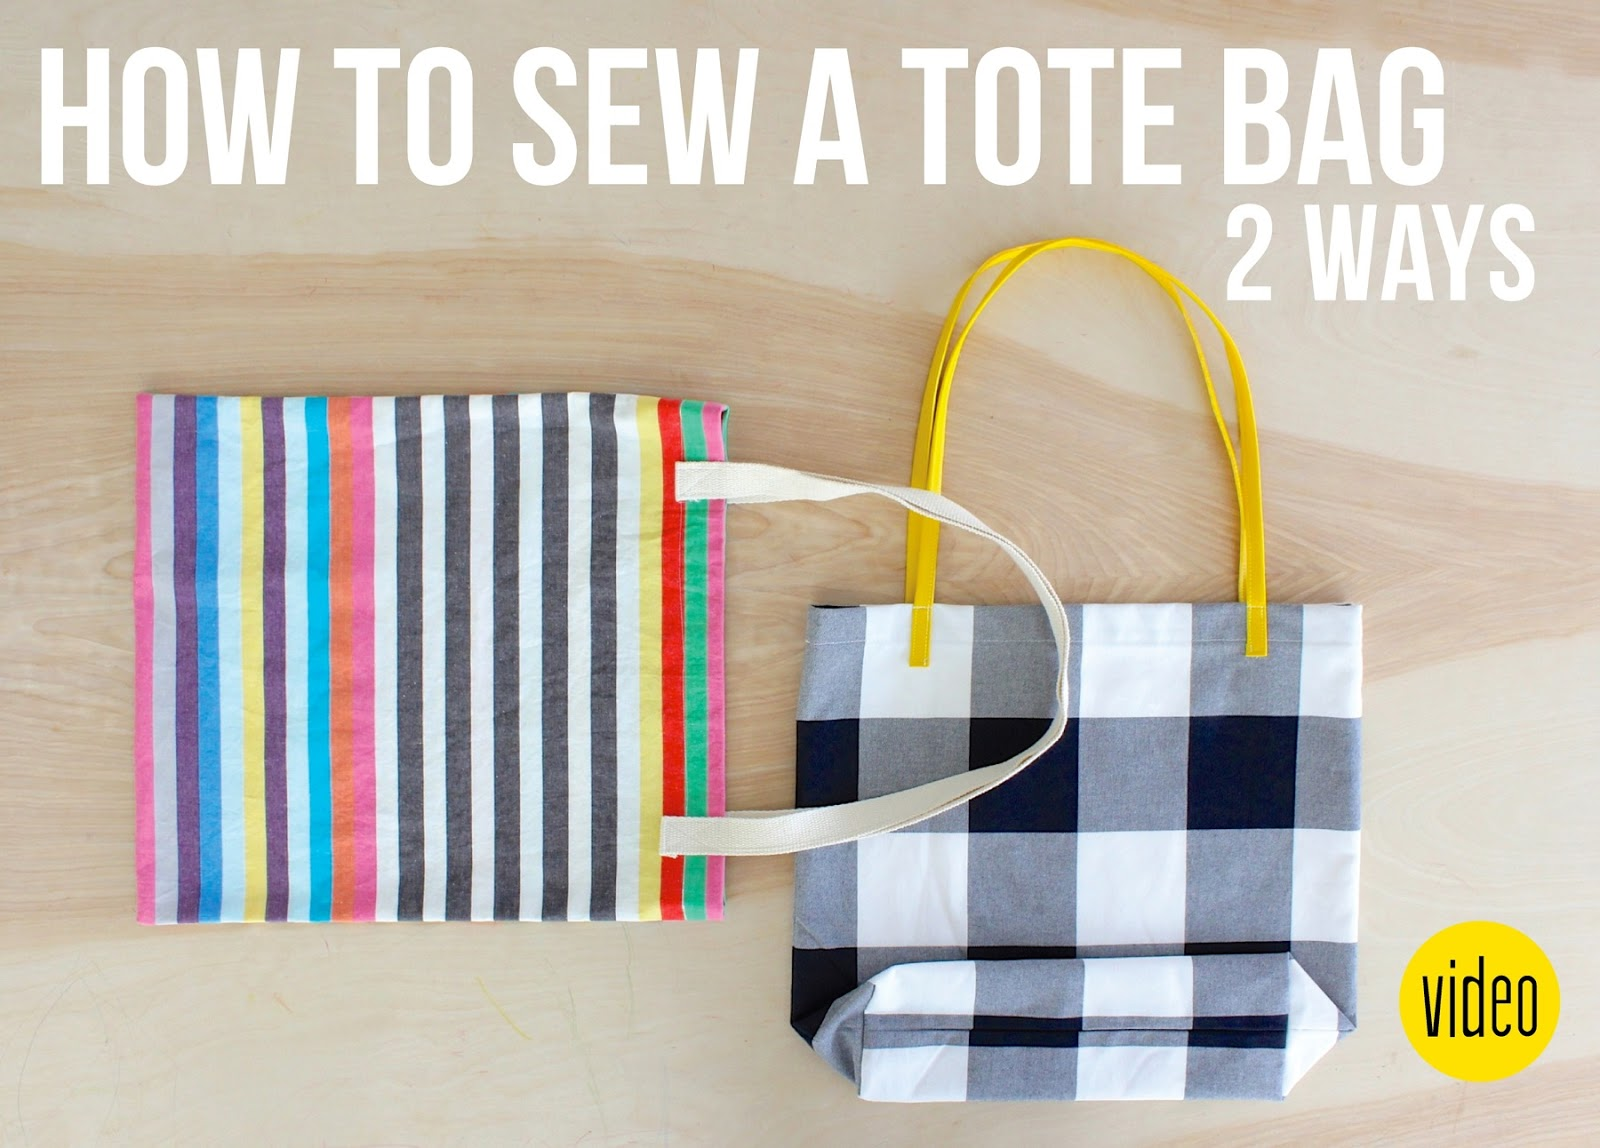 Two Ways To Sew A Tote Bag With Hidden Surprise